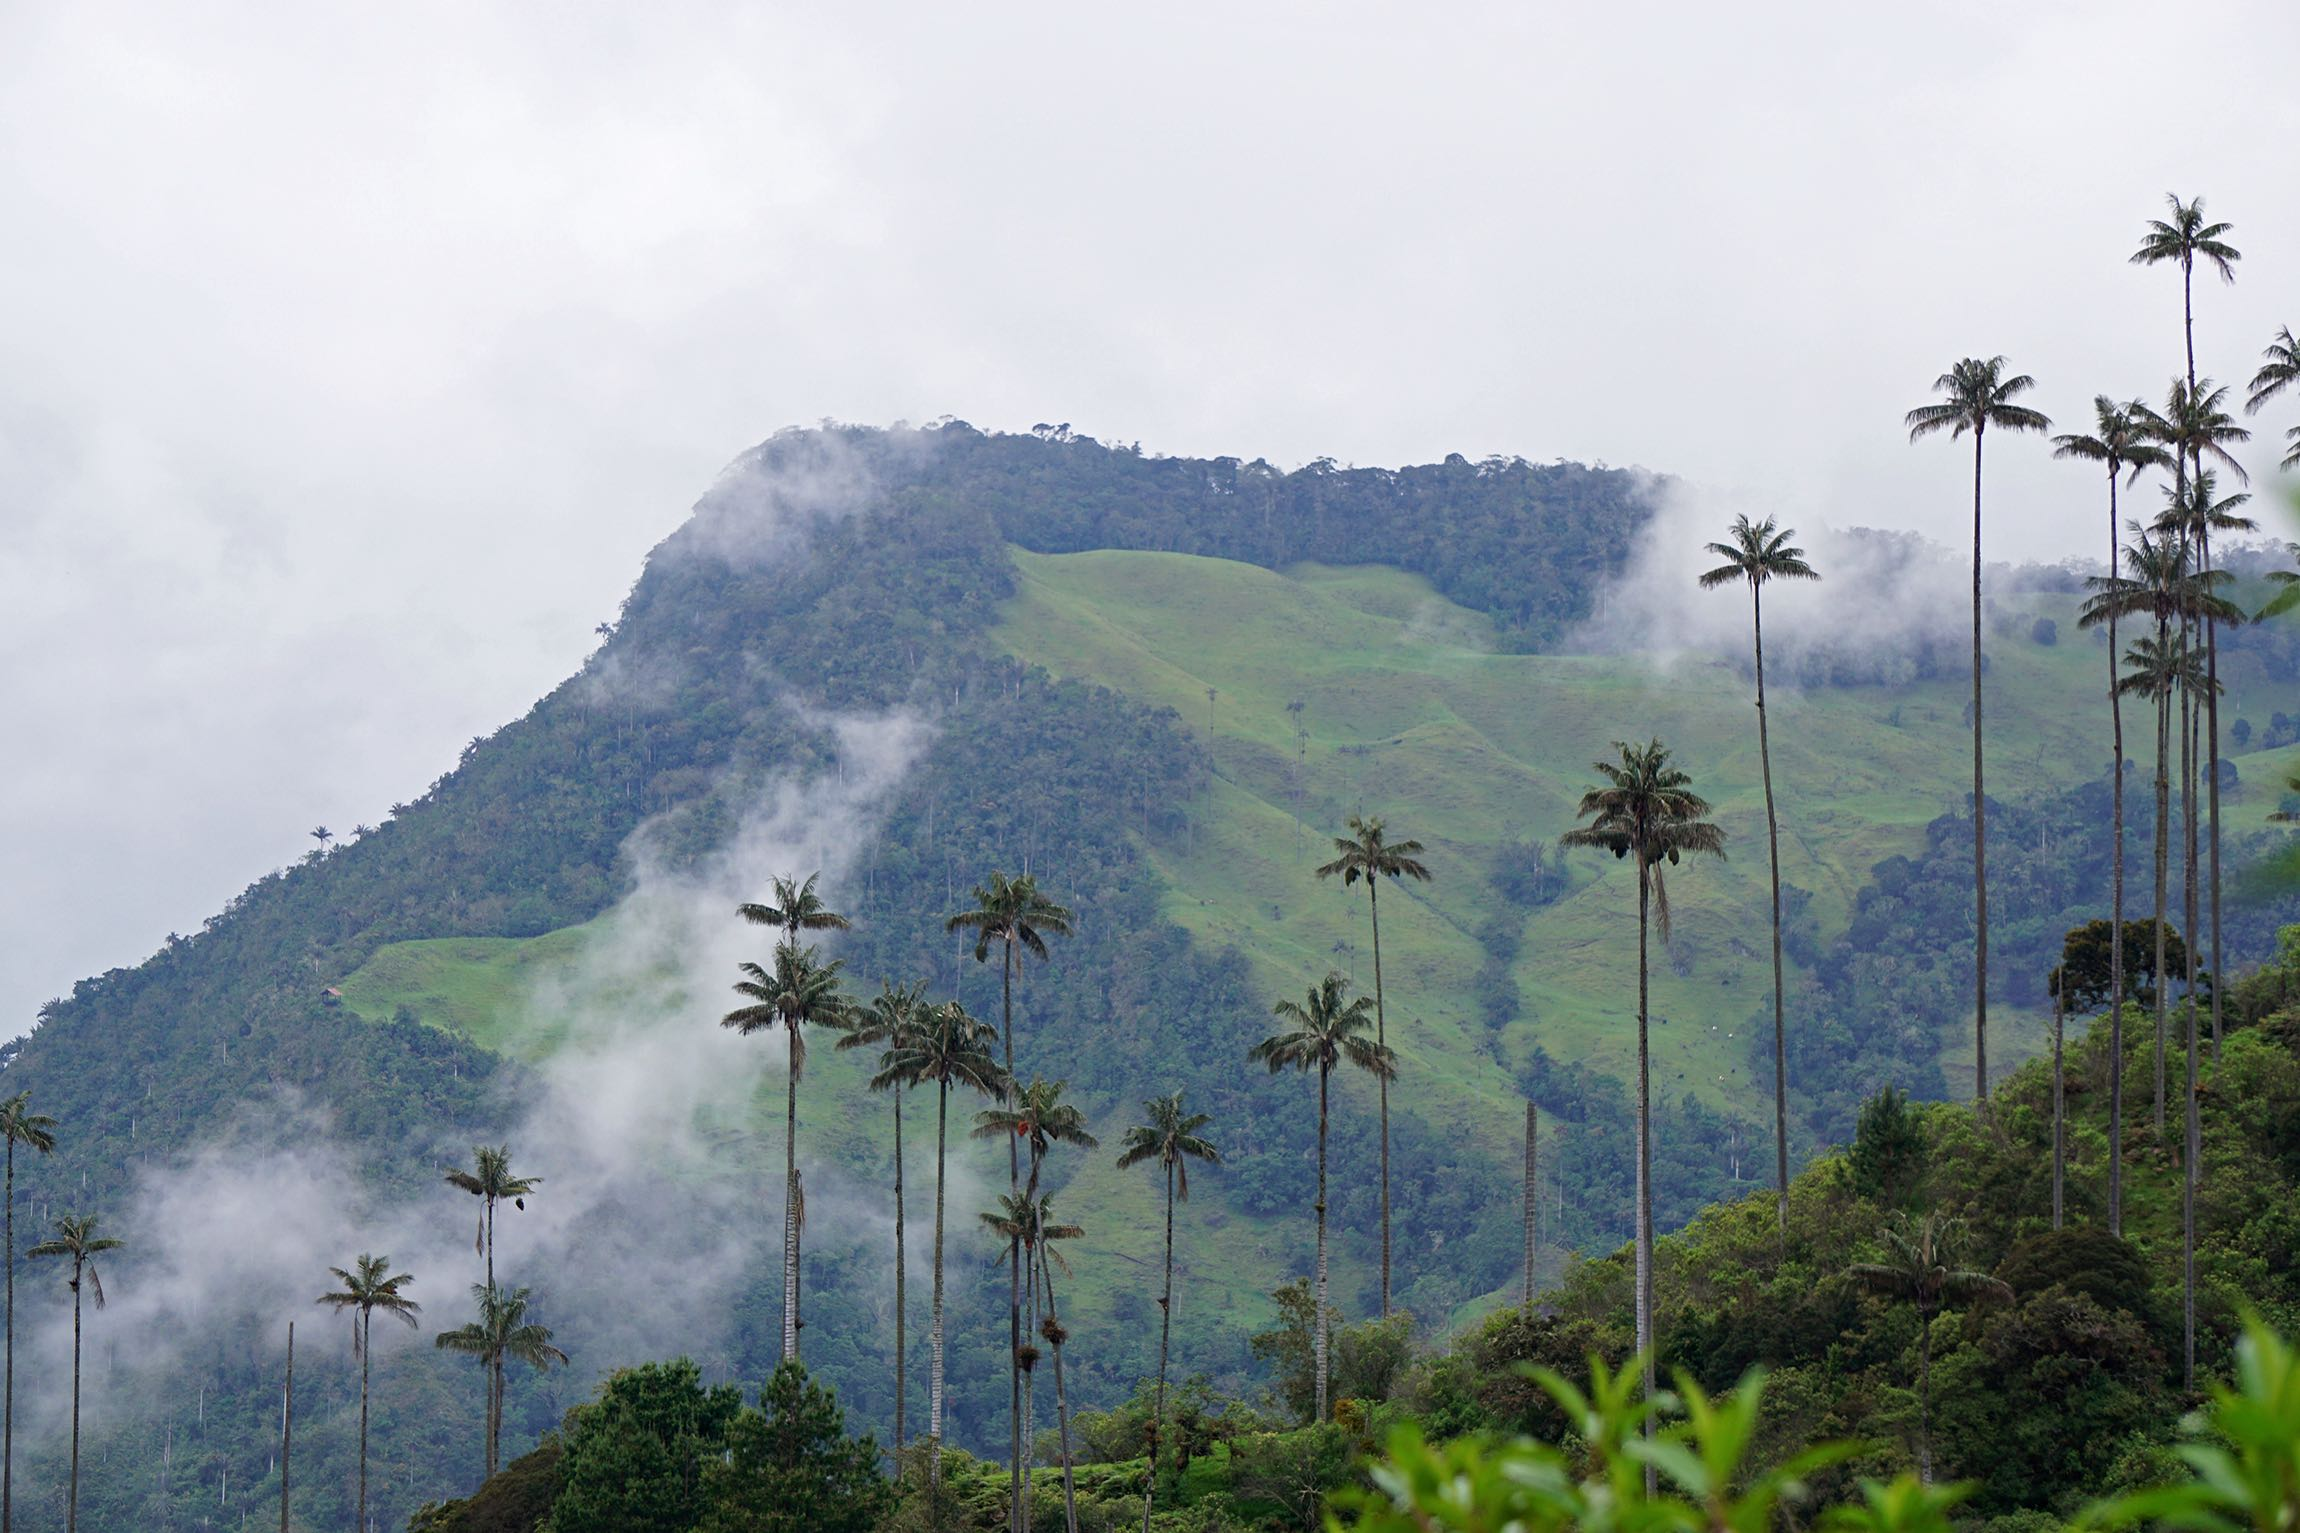 World's tallest palm trees | Hiking Cocora Valley, Salento, Colombia